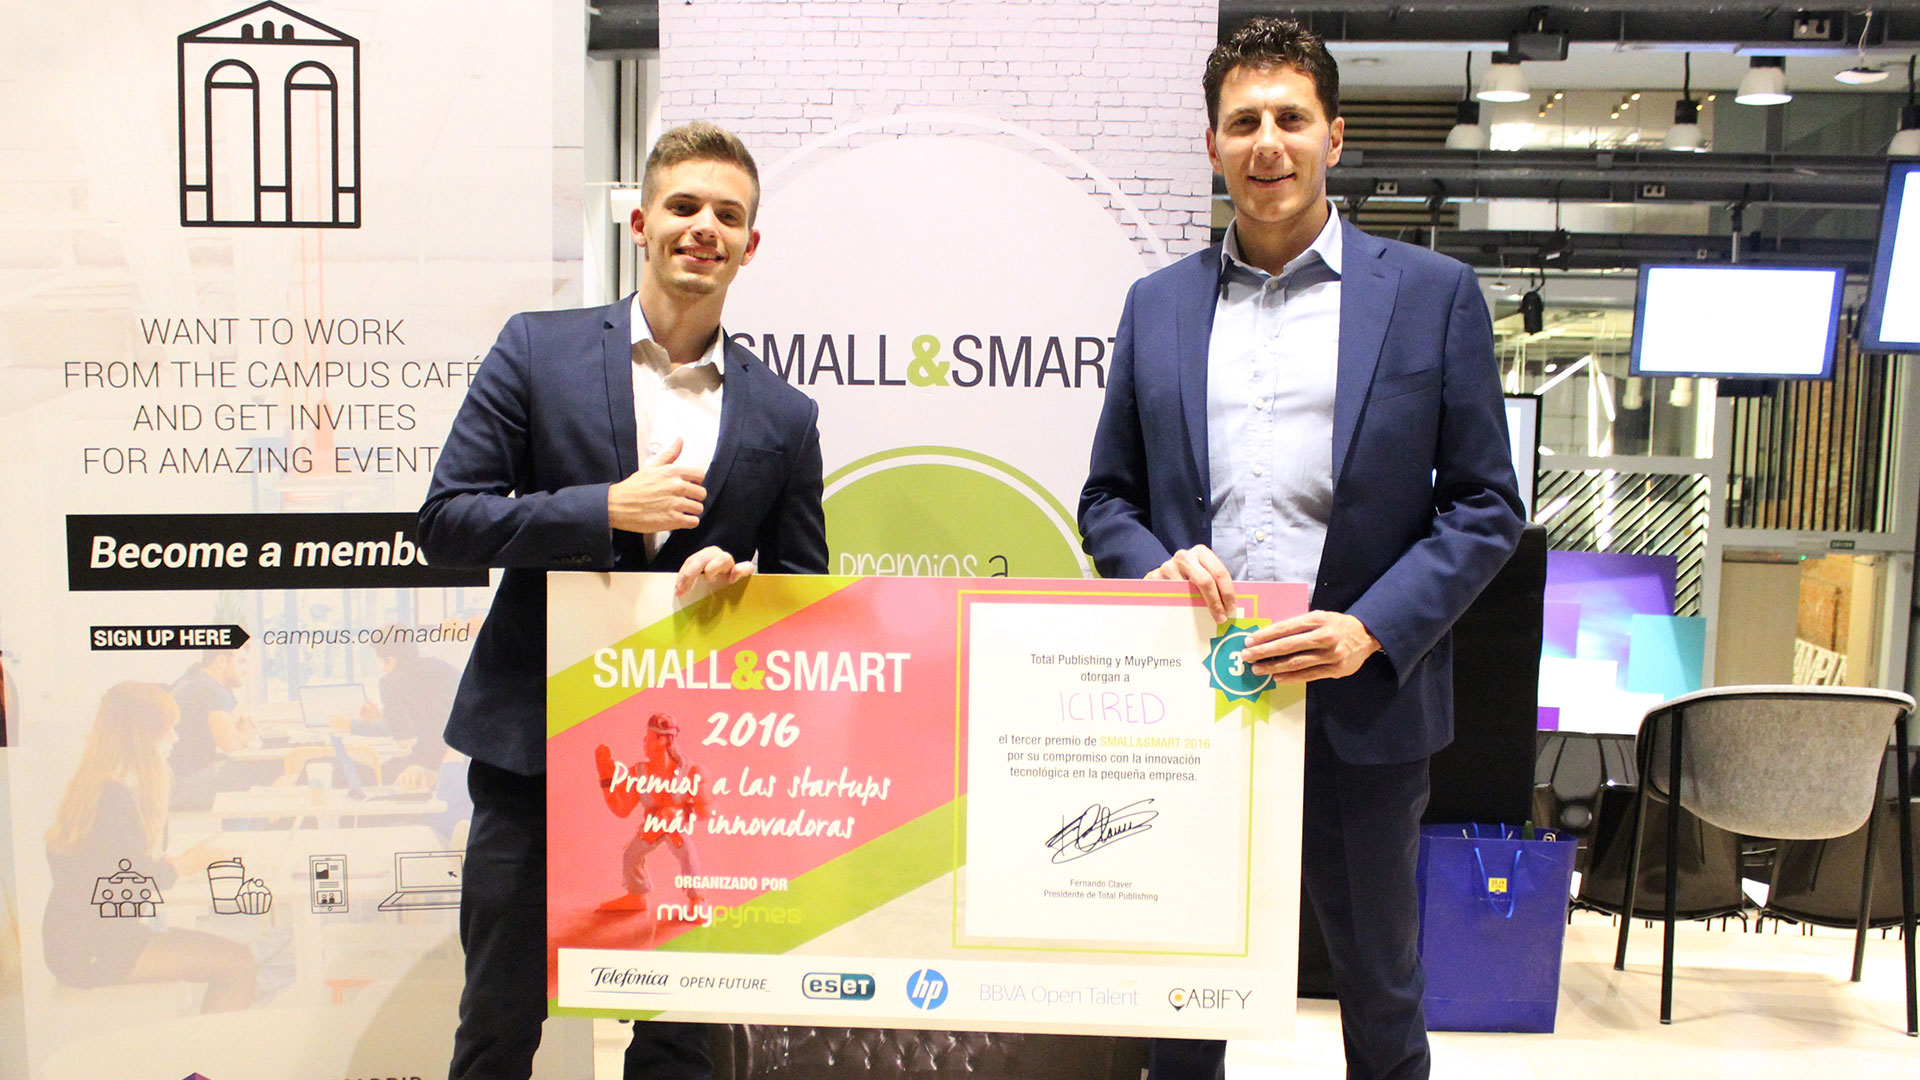 tpnet-small-smart-2016-evento-startups-tercer-premio-icired-02